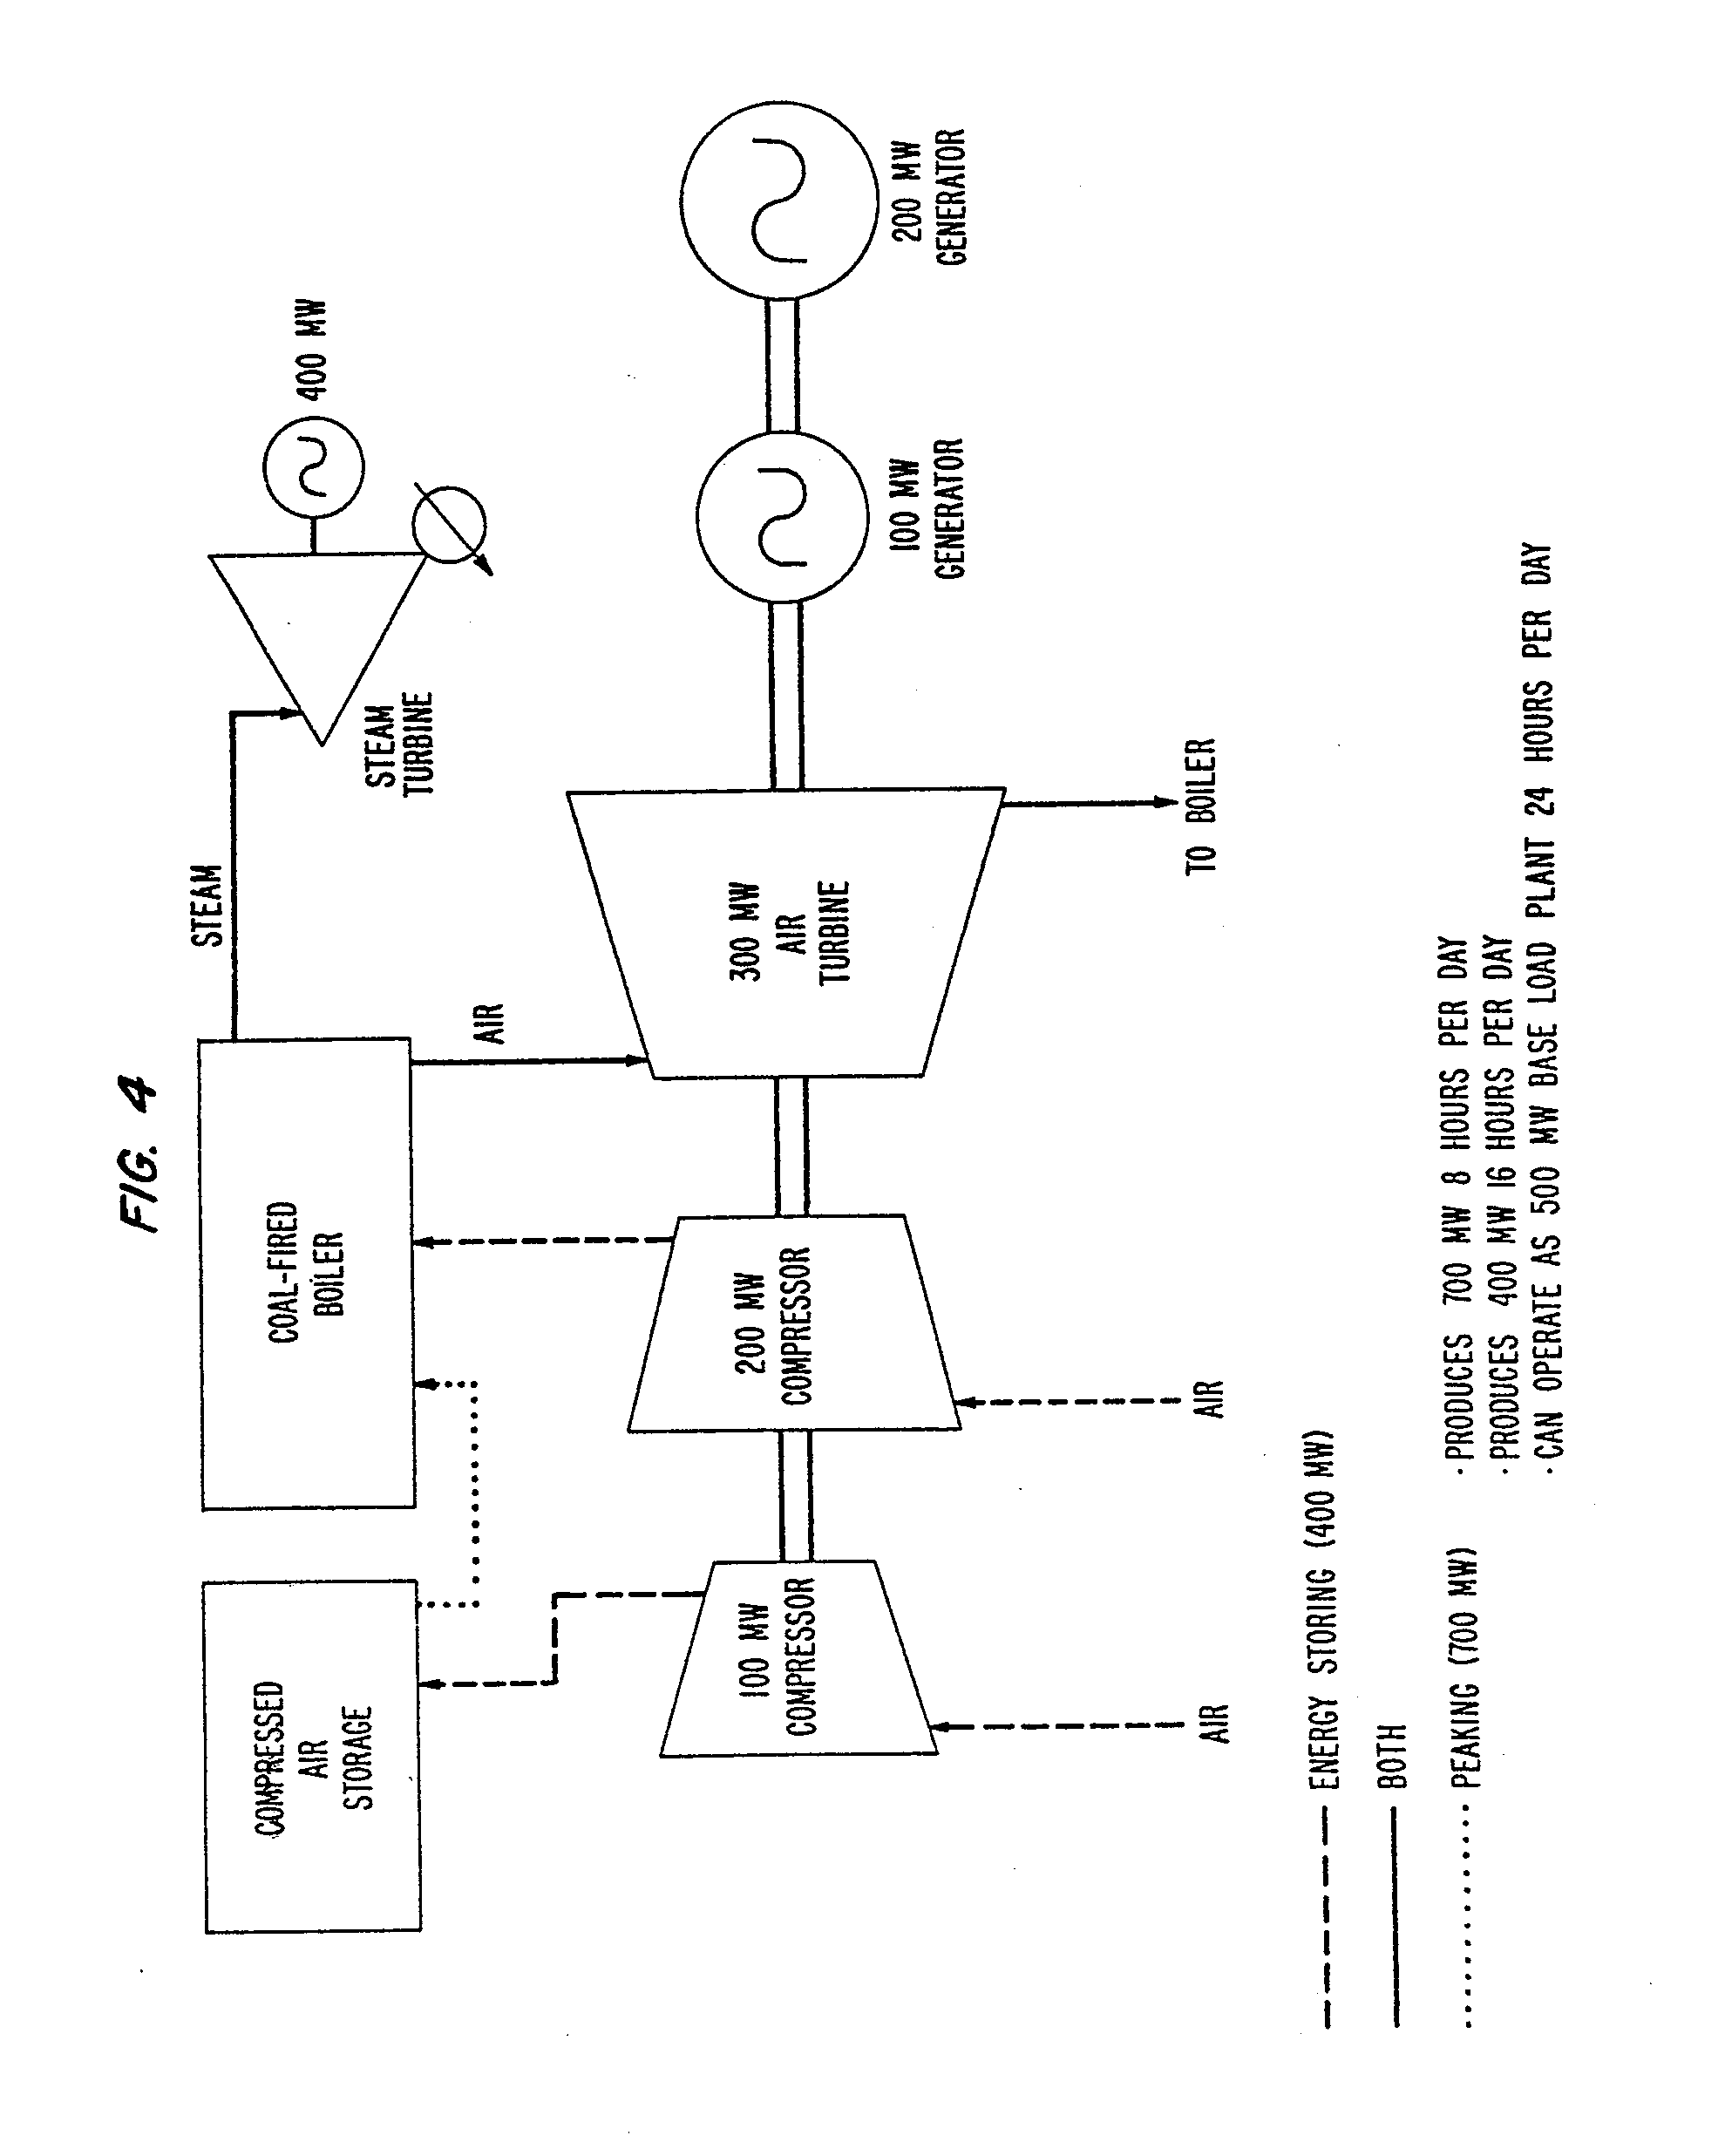 500 Mw Power Plant Diagram Schematic Diagrams Coal Patente Ep0117667a2 Integrating Fired Steam Thermal Flow